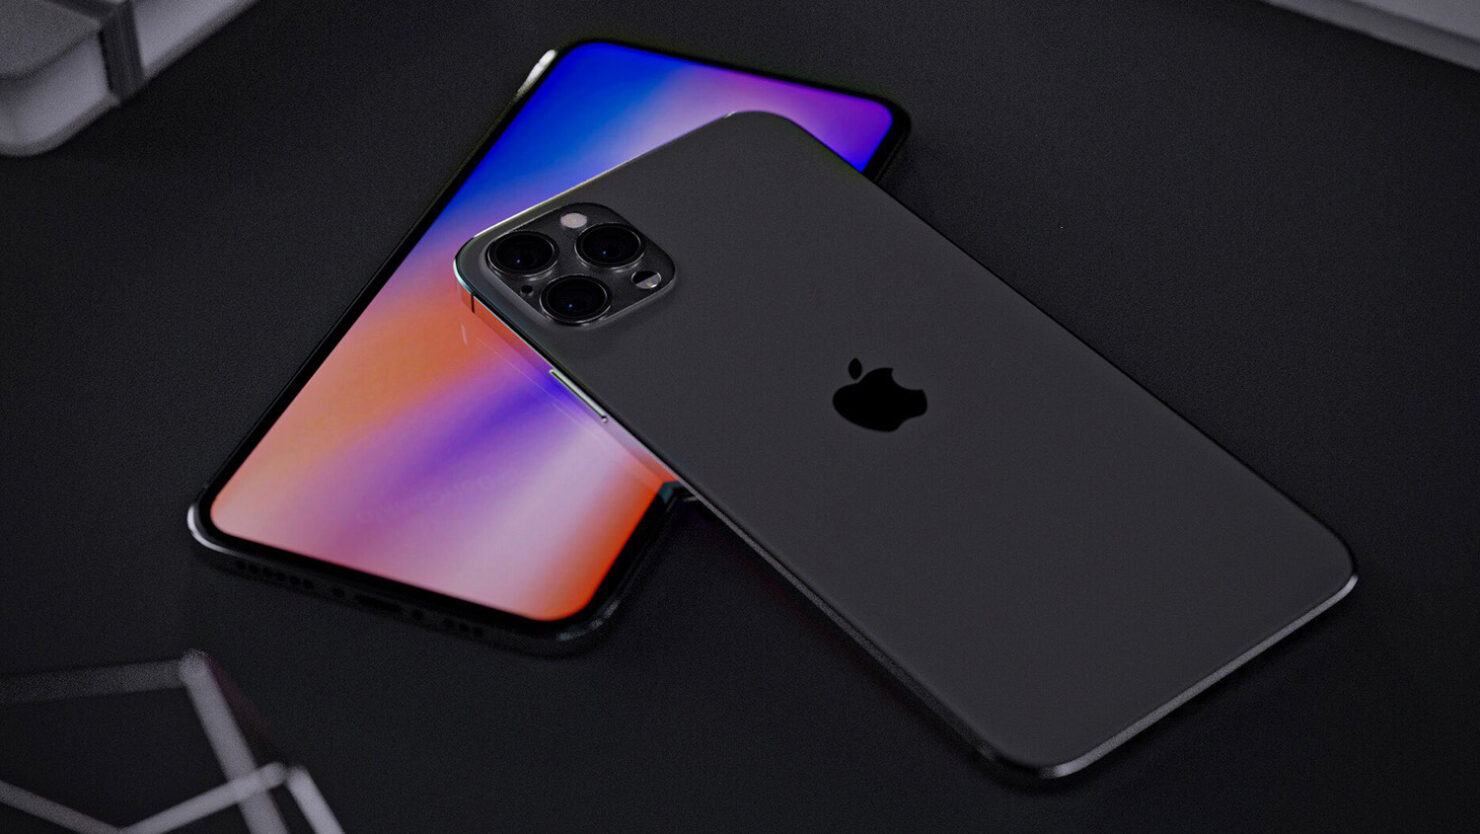 2020 iPhone 12 Launch Could Be Delayed to December or Later Due to COVID-19-Related Lockdowns